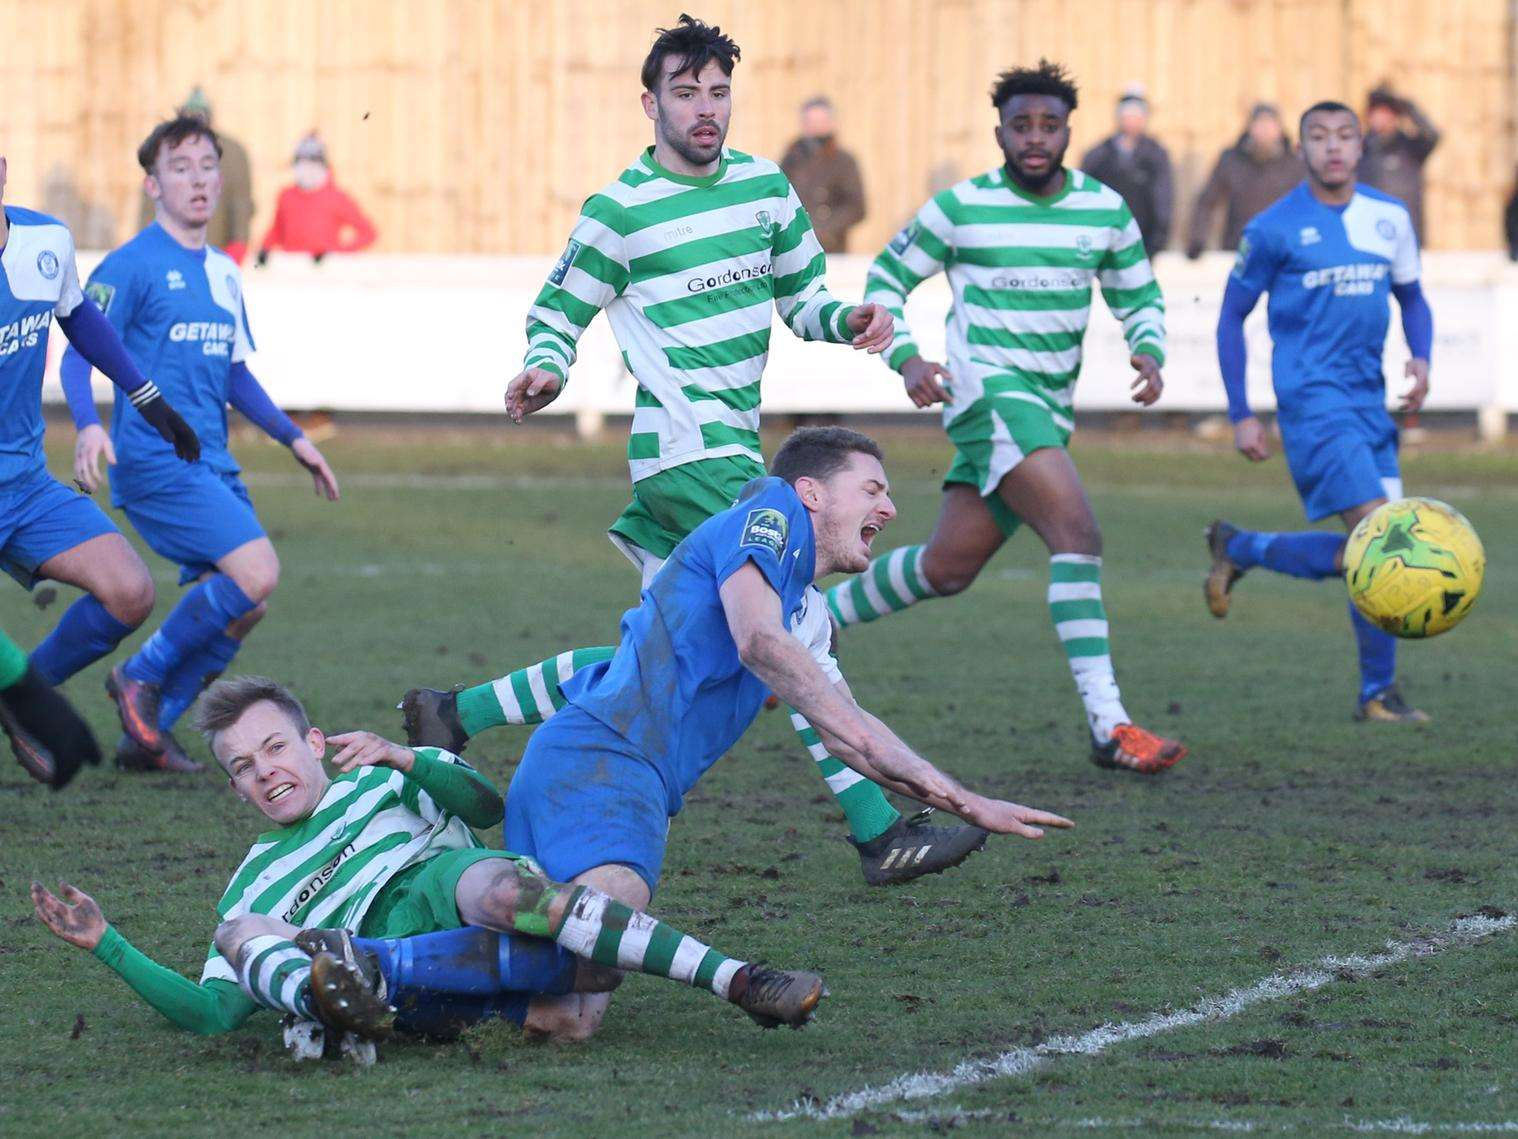 CONTROVERSIAL: Bury Town's Ollie Hughes wanted a penalty for this tackle, but saw the referee give it the other way Picture: Richard Marsham